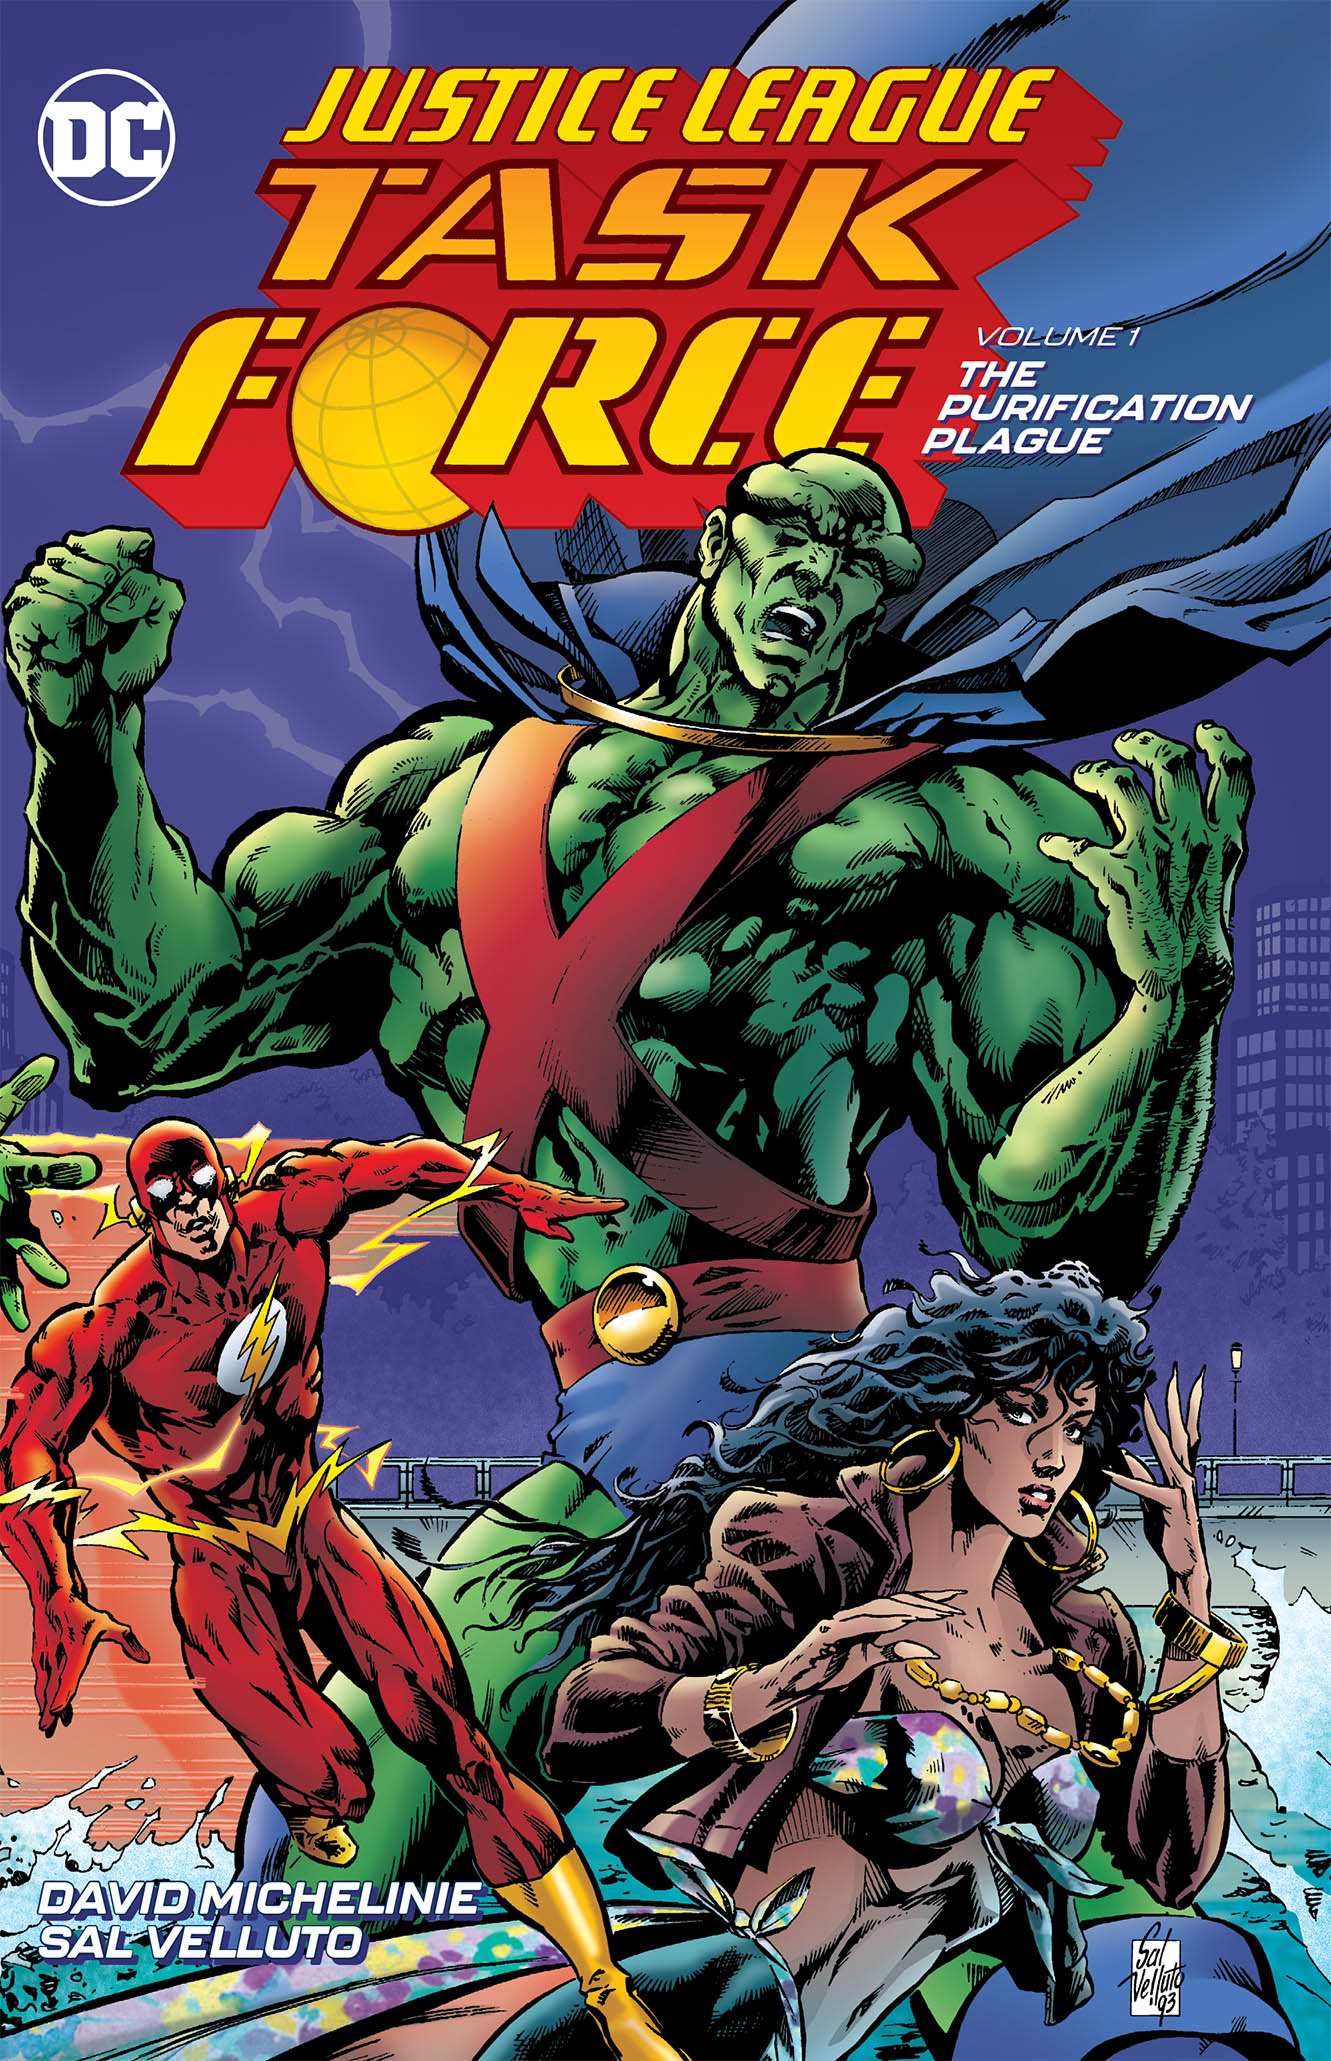 JUSTICE LEAGUE TASK FORCE TP VOL 01 PURIFICATION PLAGUE